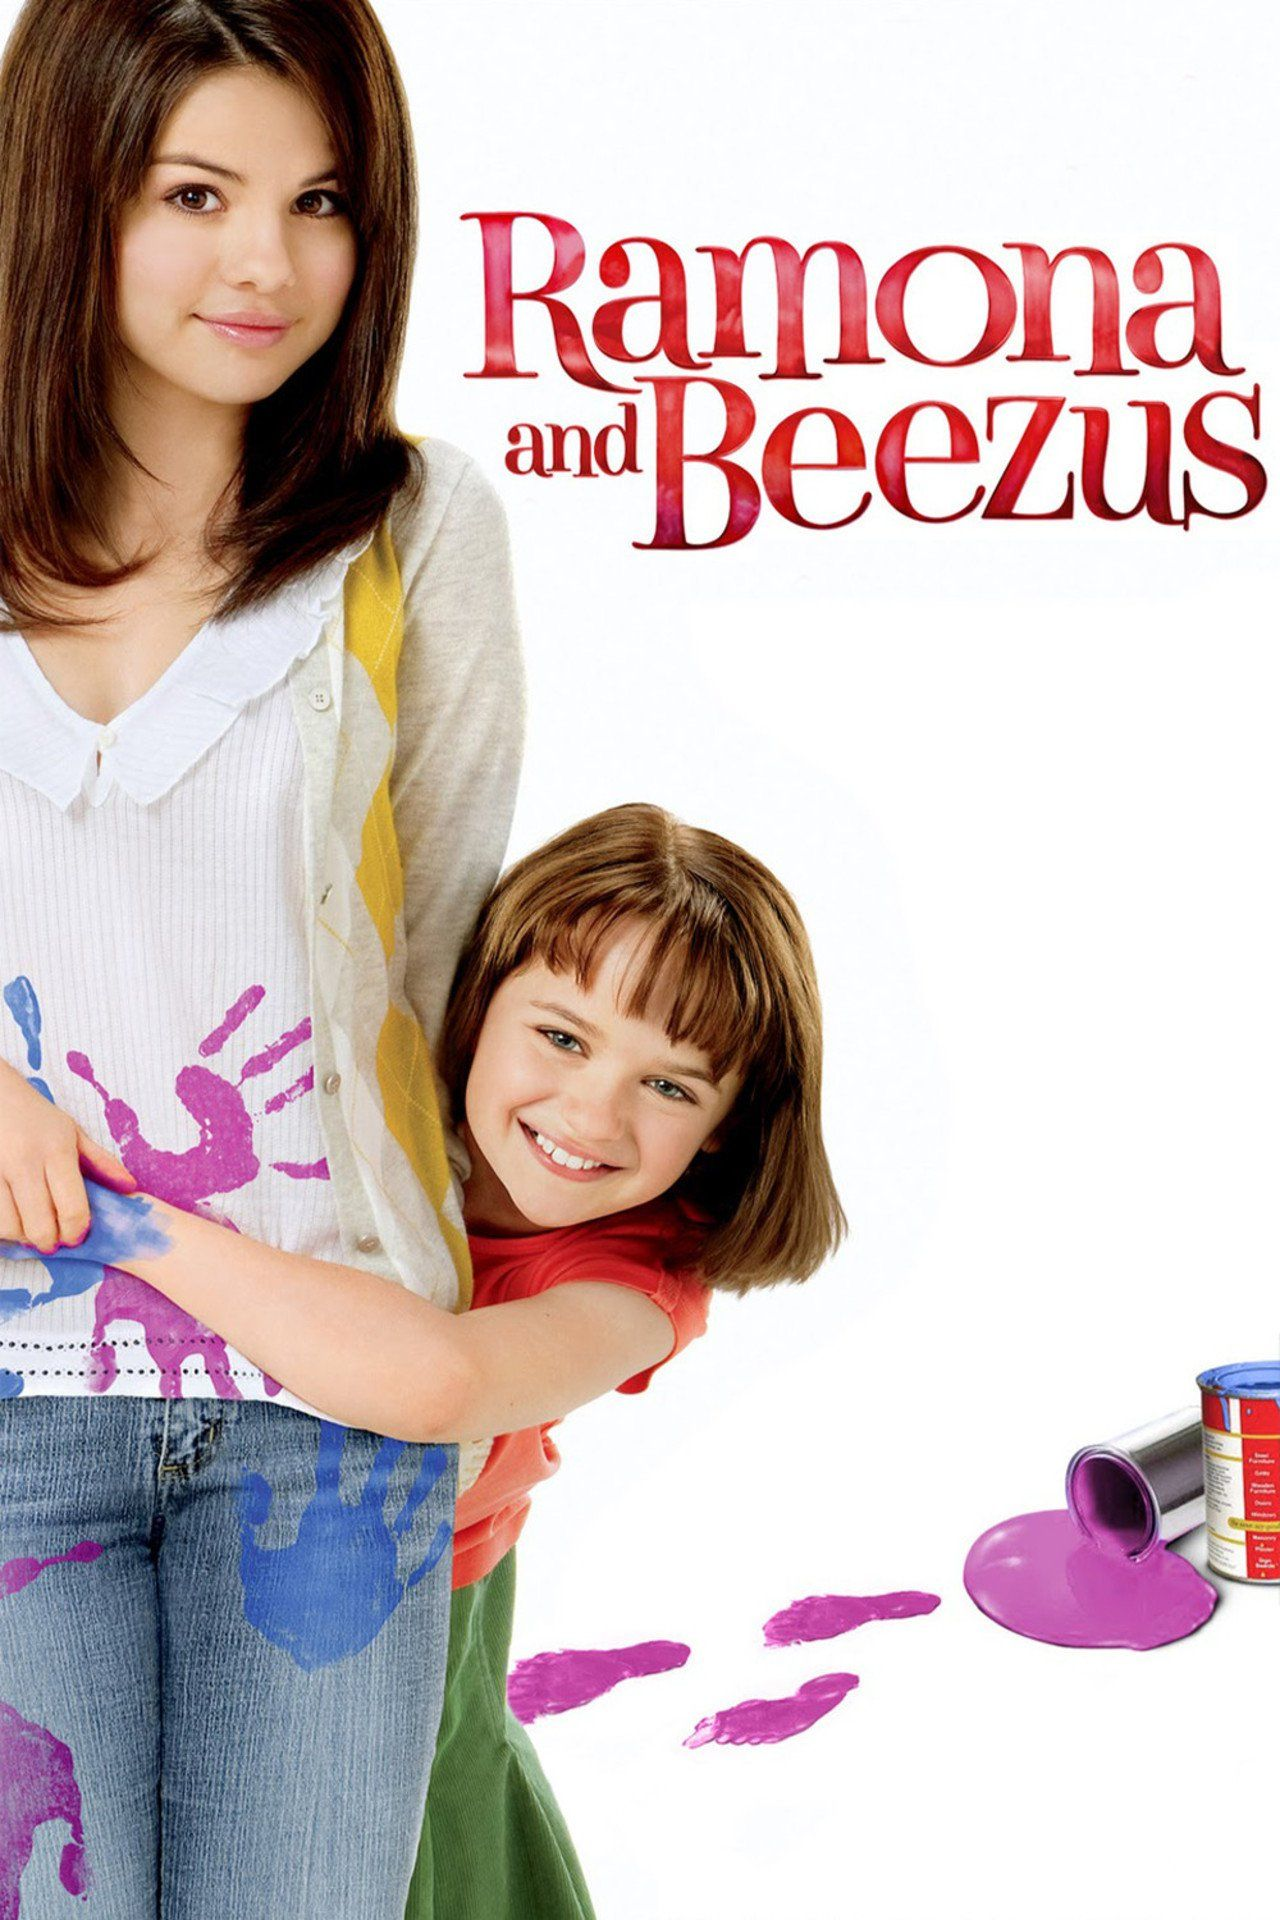 The Adventures Of Young Ramona Quimby Newcomer Joey King And Her